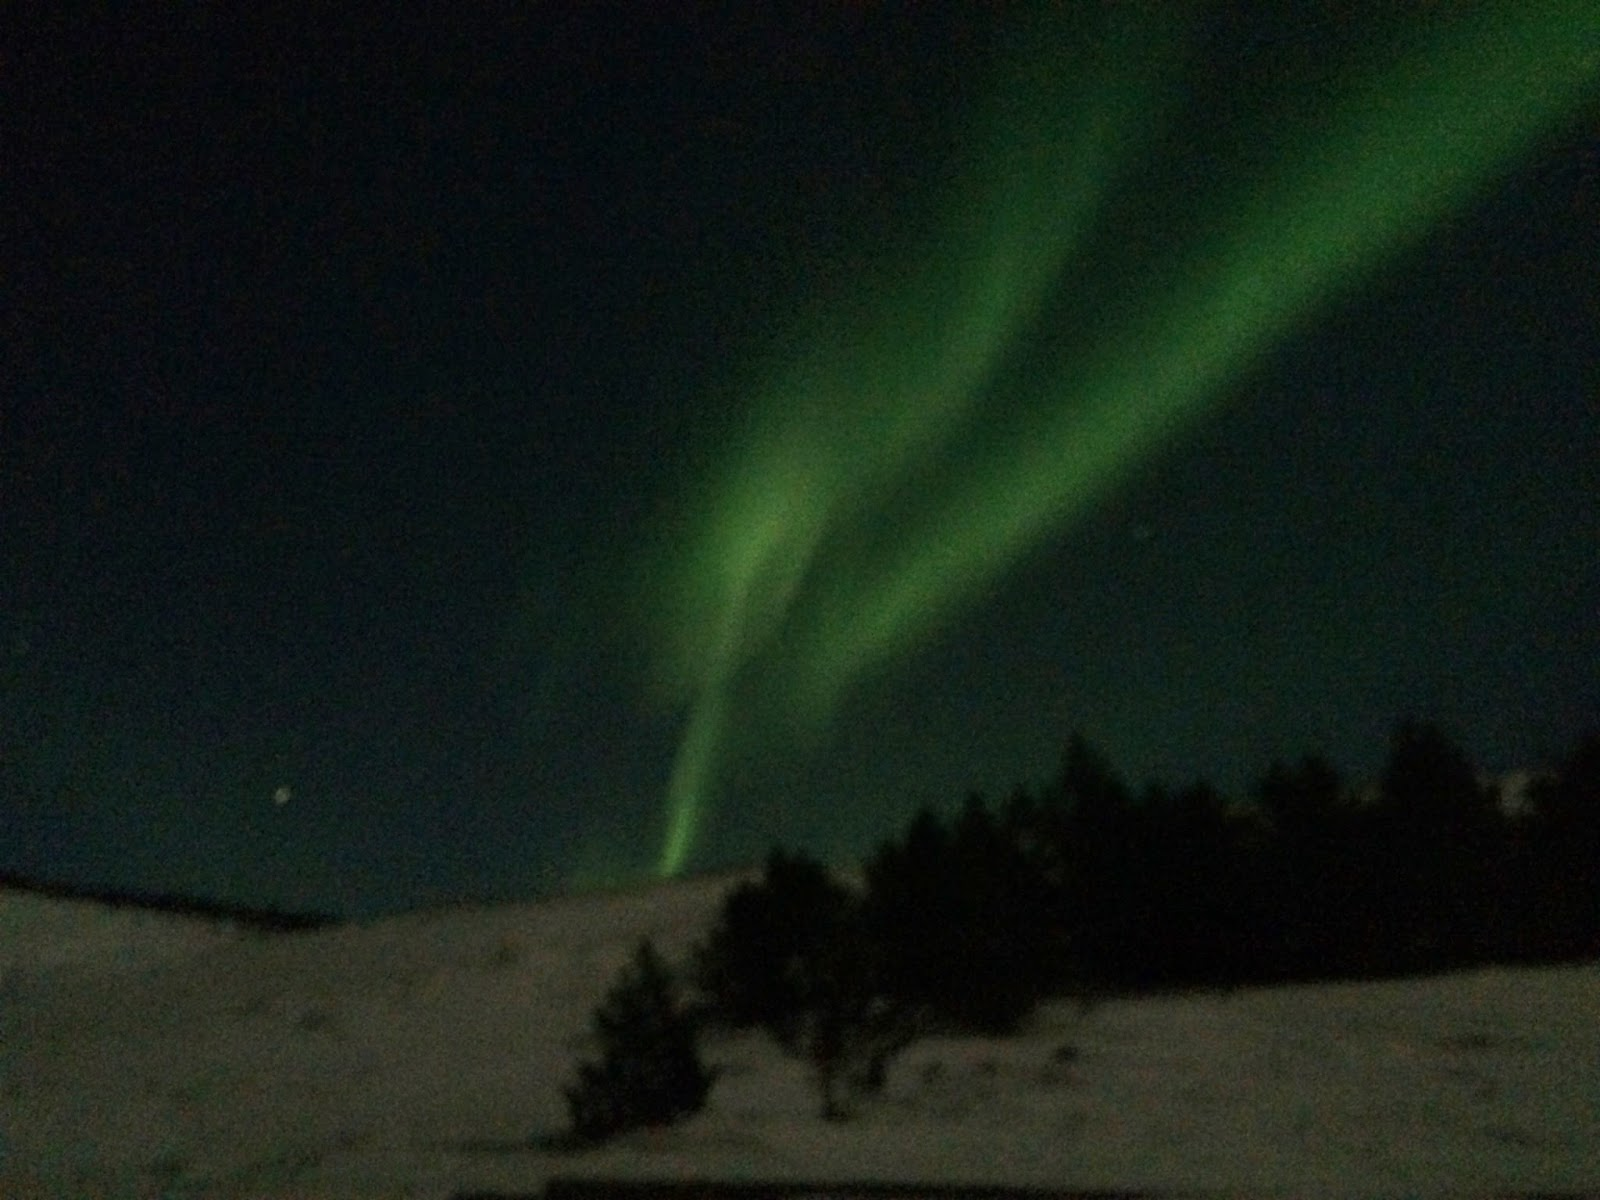 The Northern Lights - as seen with an iPhone 5S